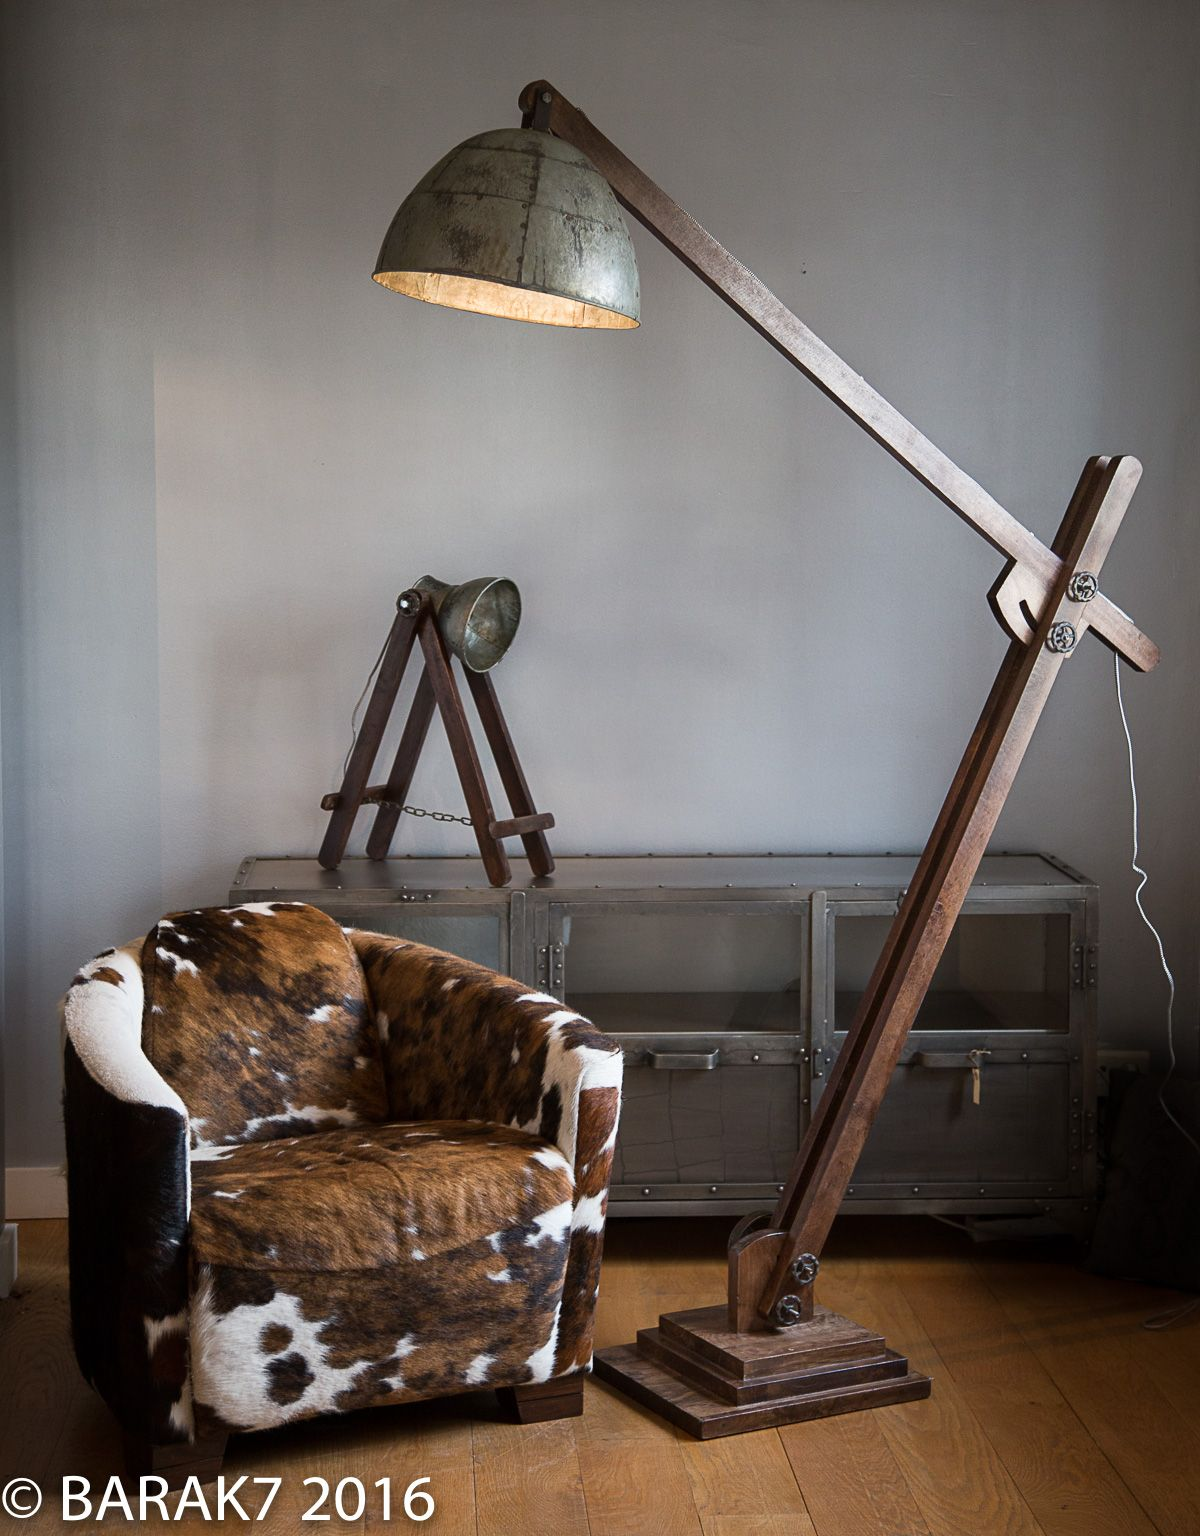 lampe industrielle sur pied acrobat meuble industriel. Black Bedroom Furniture Sets. Home Design Ideas